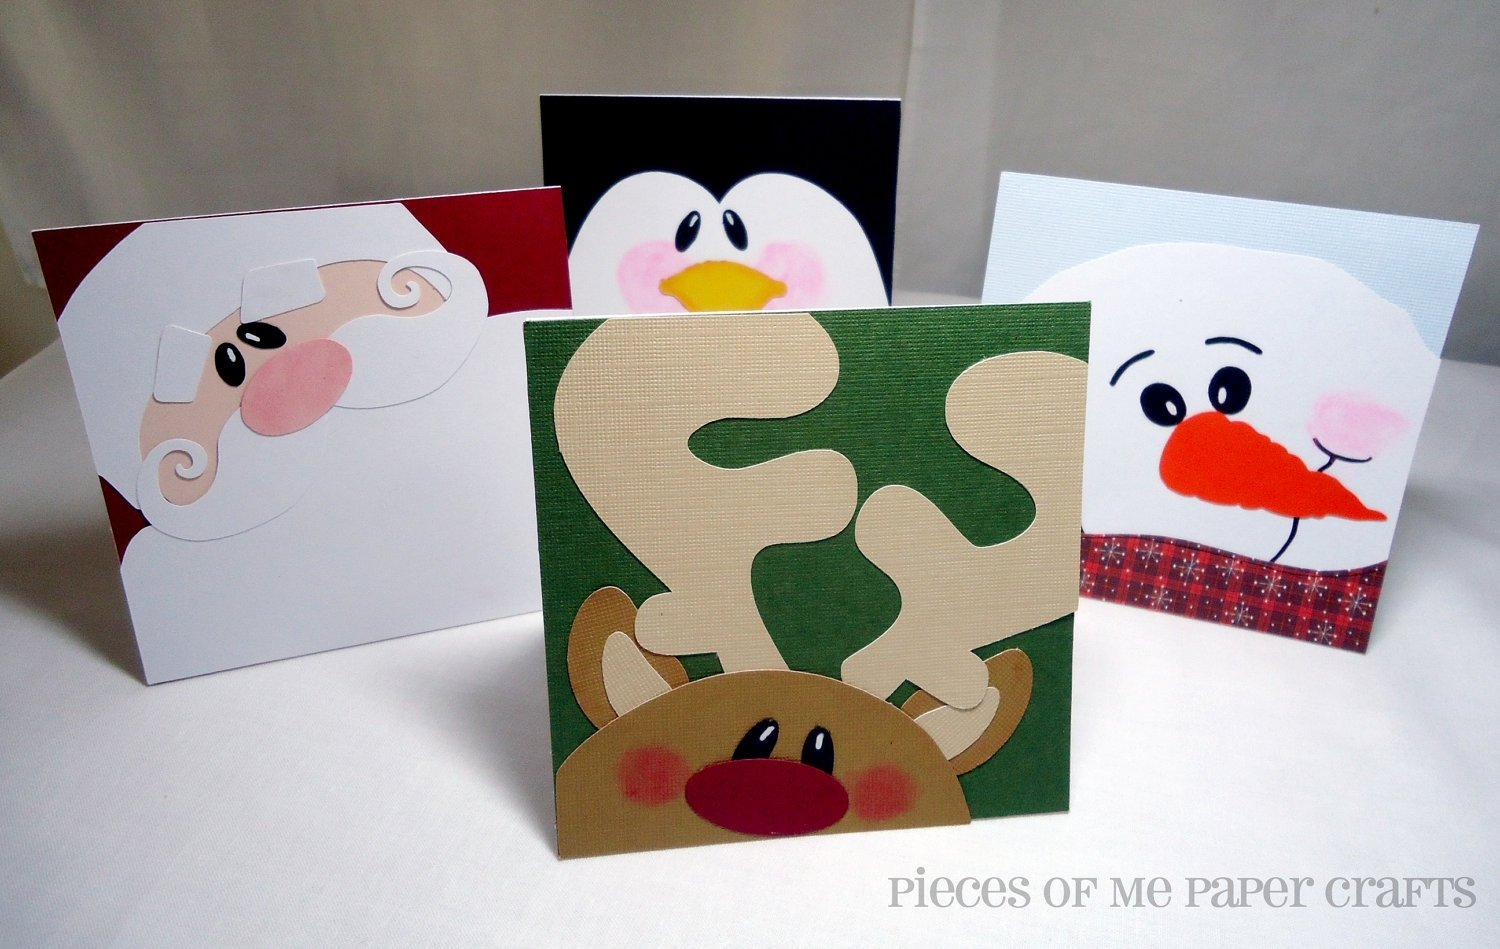 10 Unique Pinterest Christmas Card Photo Ideas cards ideas homemade christmas handmade xmas dma homes 2957